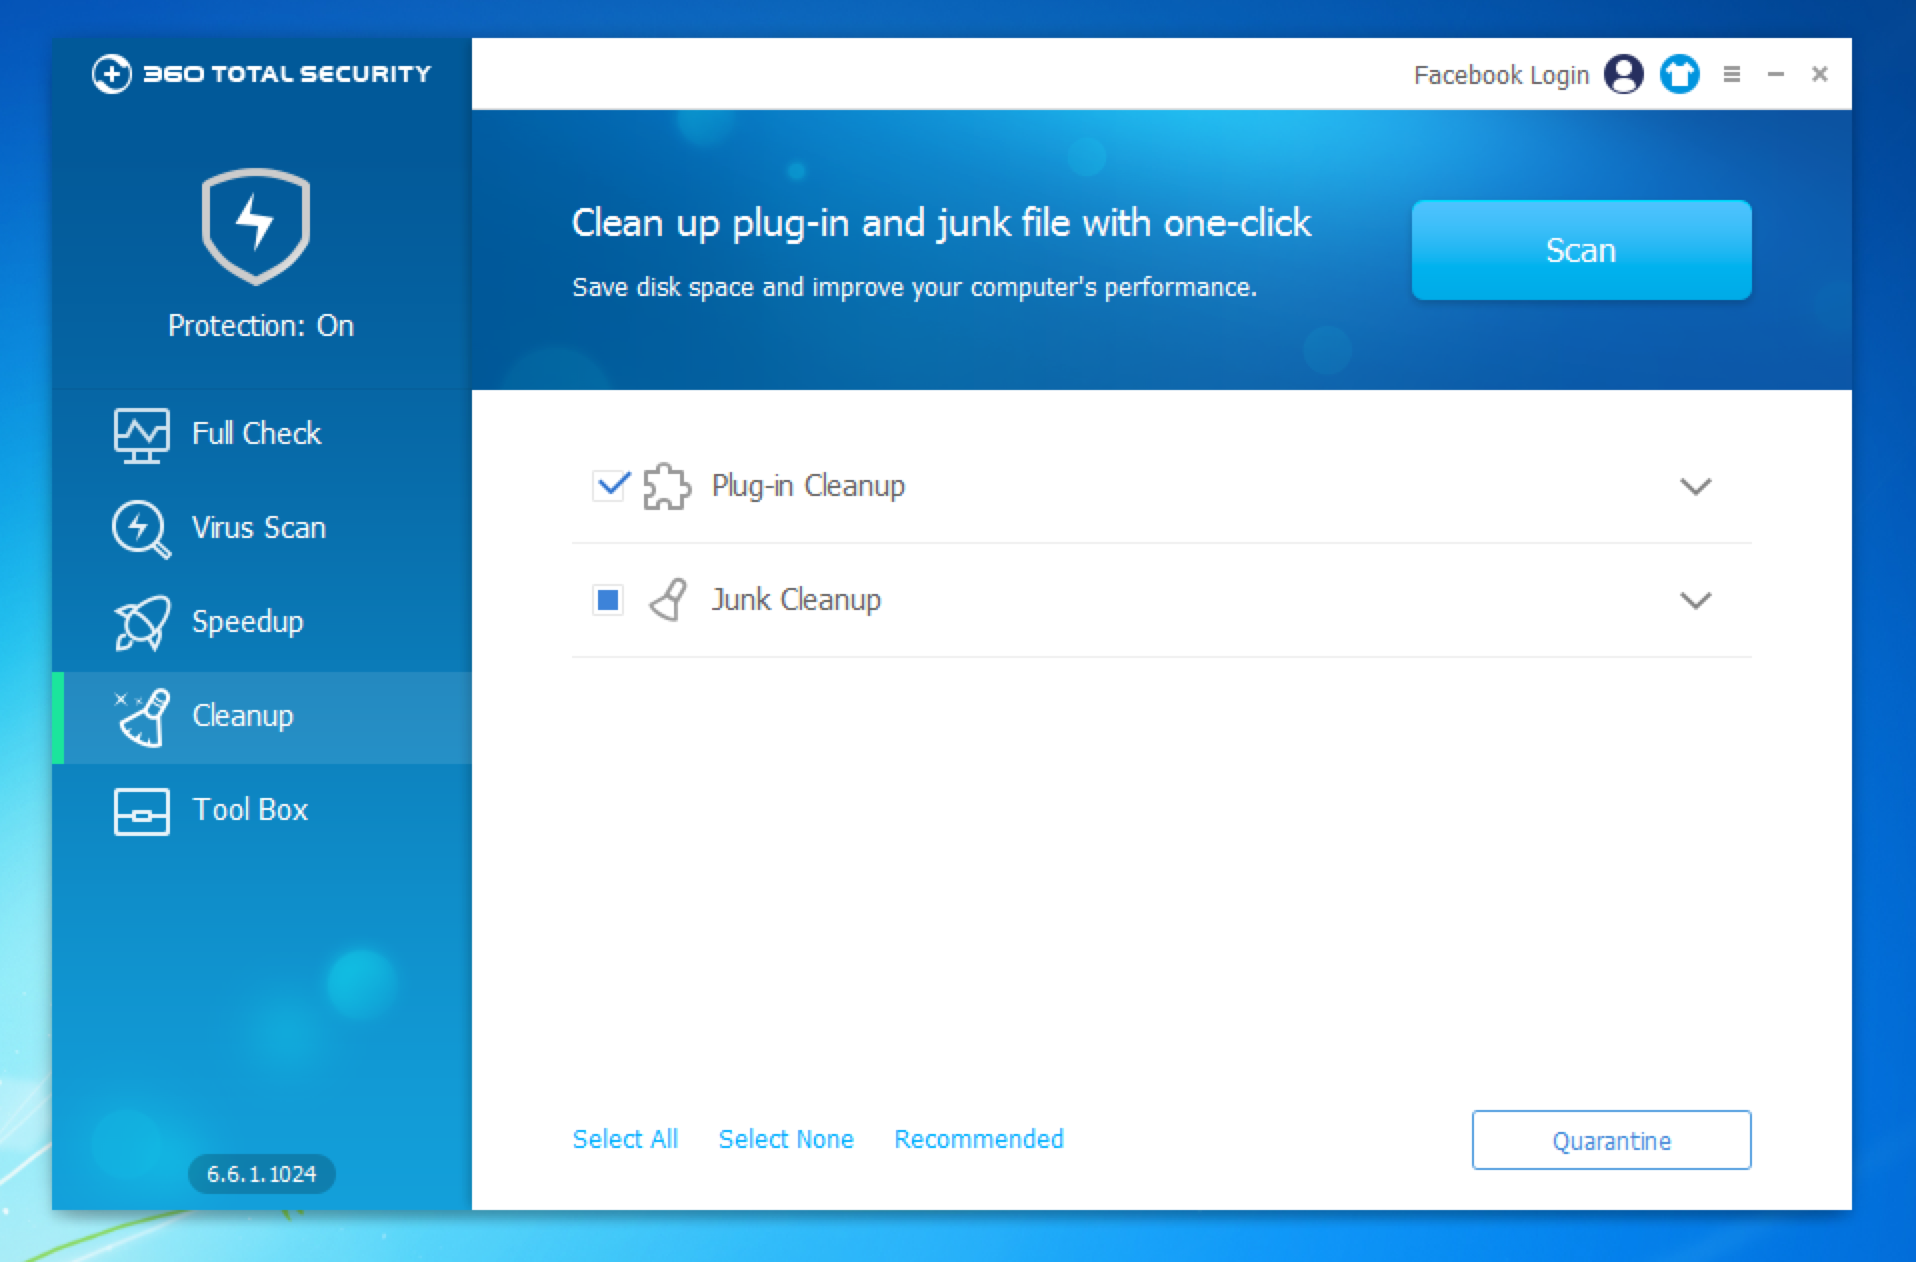 Clean up junk files and get more space | 360 Total Security Blog